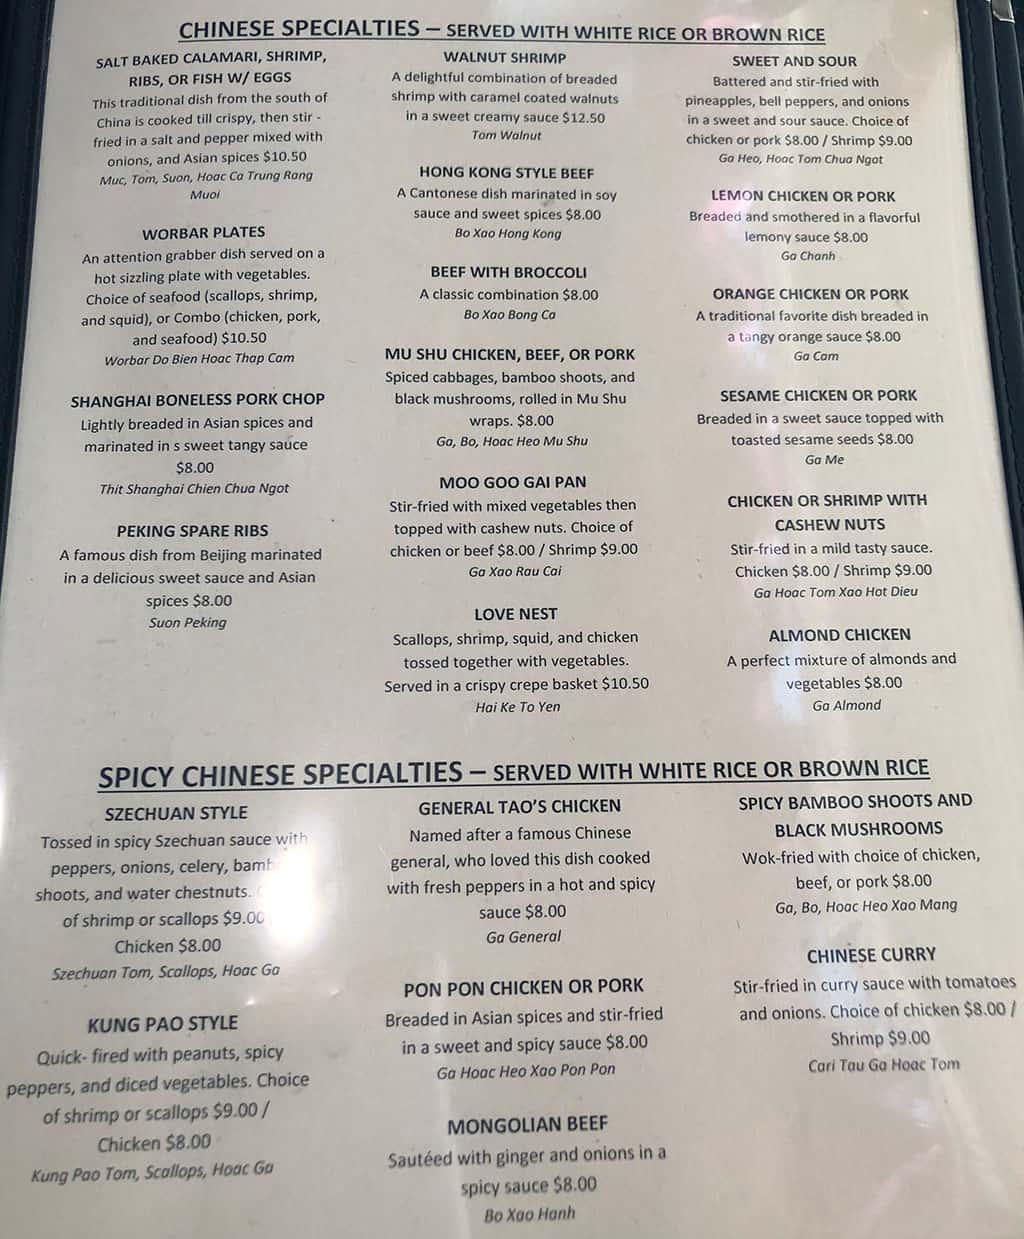 Shanghai Cafe menu - Chinese specialties